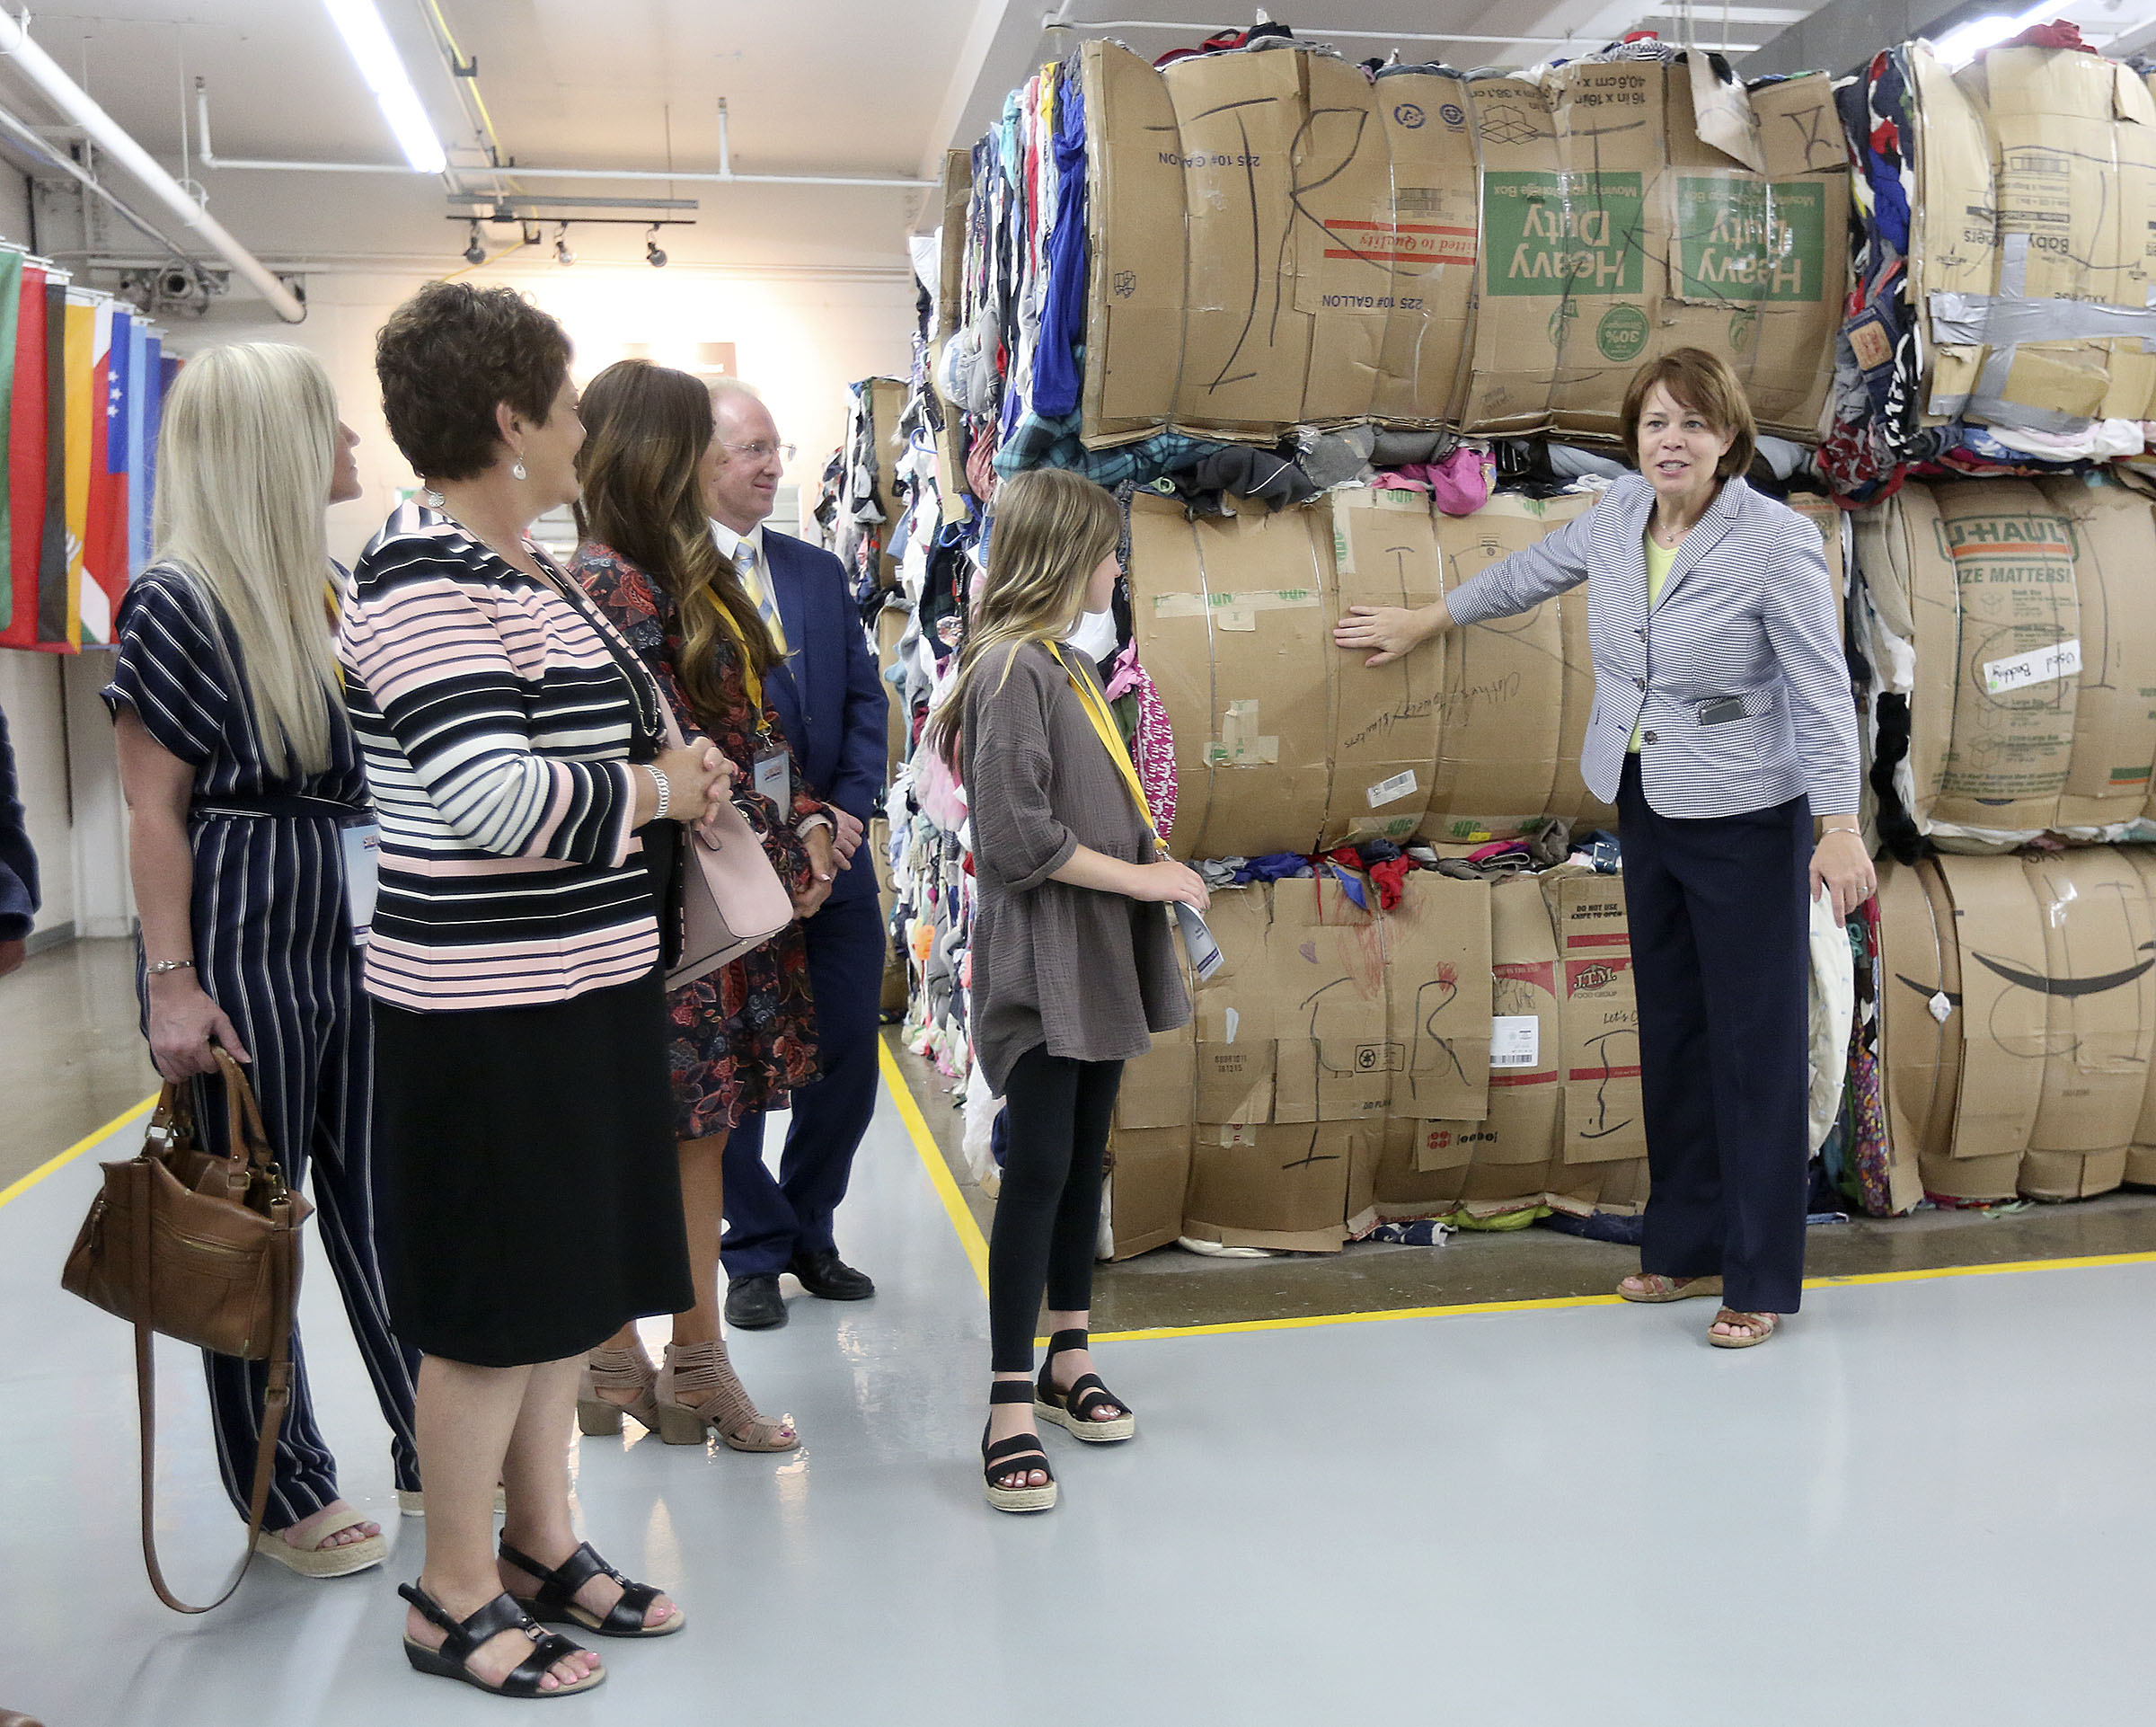 Sister Sharon Eubank, first counselor in the Relief Society general presidency, gives spouses of U.S. governors a tour of the facilities and talks about clothing donation at the Latter-day Saint Humanitarian Center in Salt Lake City on Thursday, July 25, 2019.